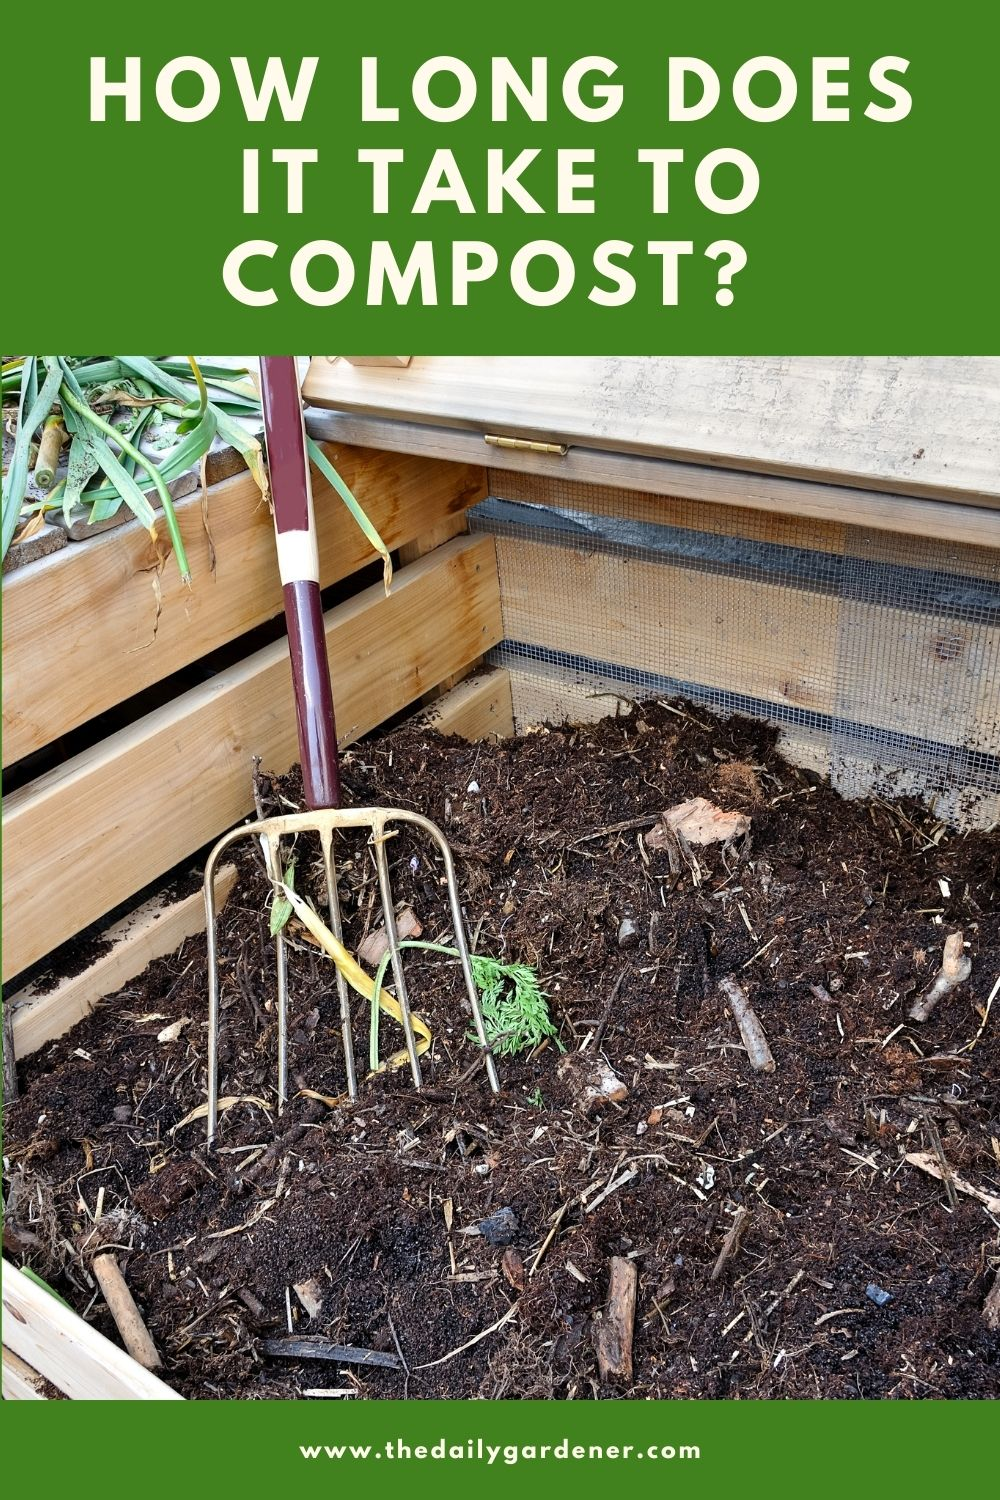 How Long Does It Take to Compost 2